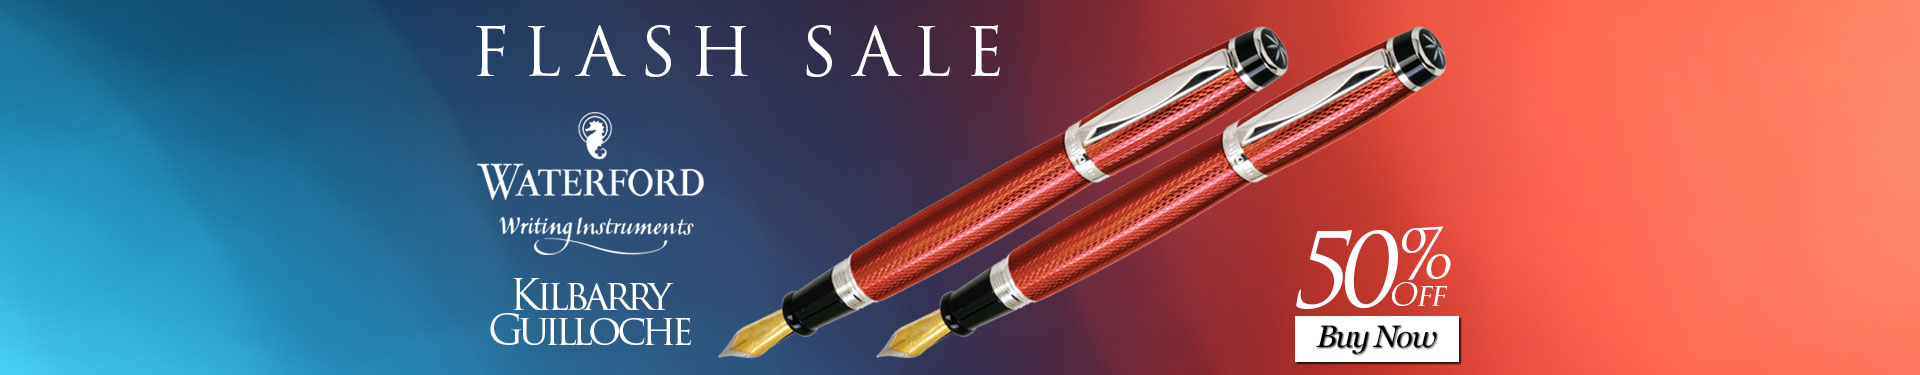 Flash Sale - Save 50% on the Waterford Kilbarry Guilloche Fountain Pen